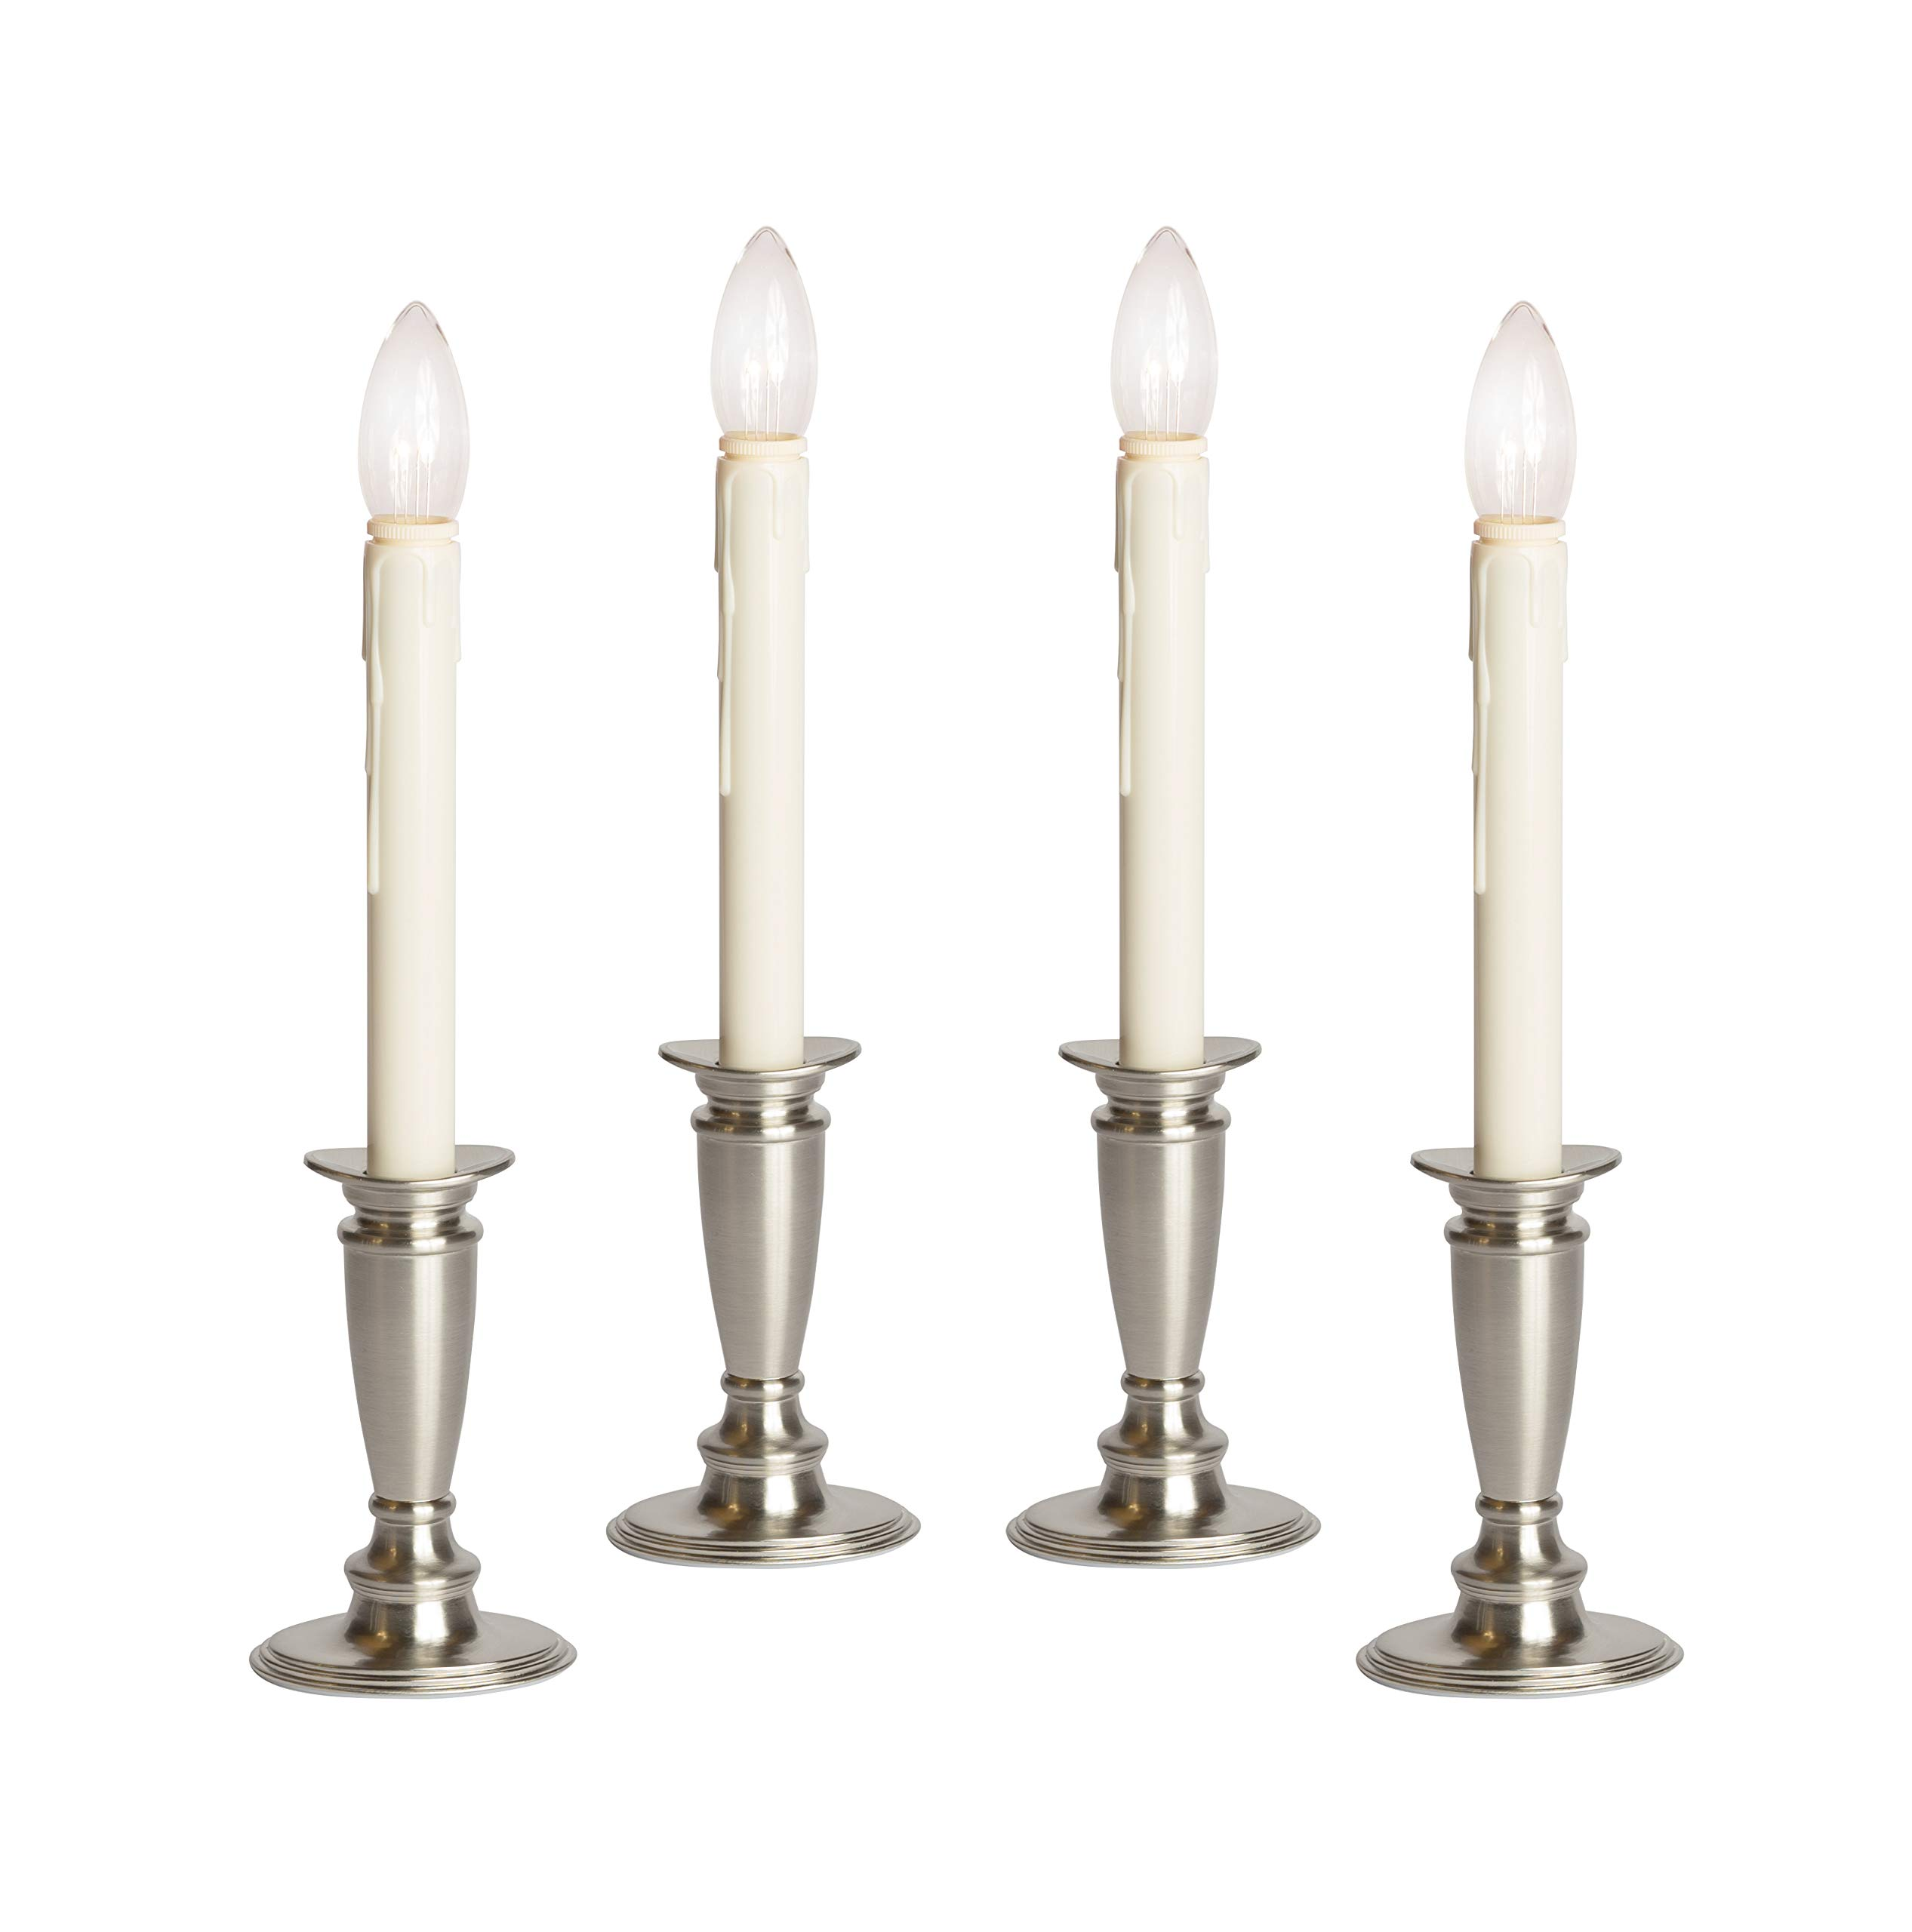 Set of 4 Battery Operated Window Candles (Brushed Silver)